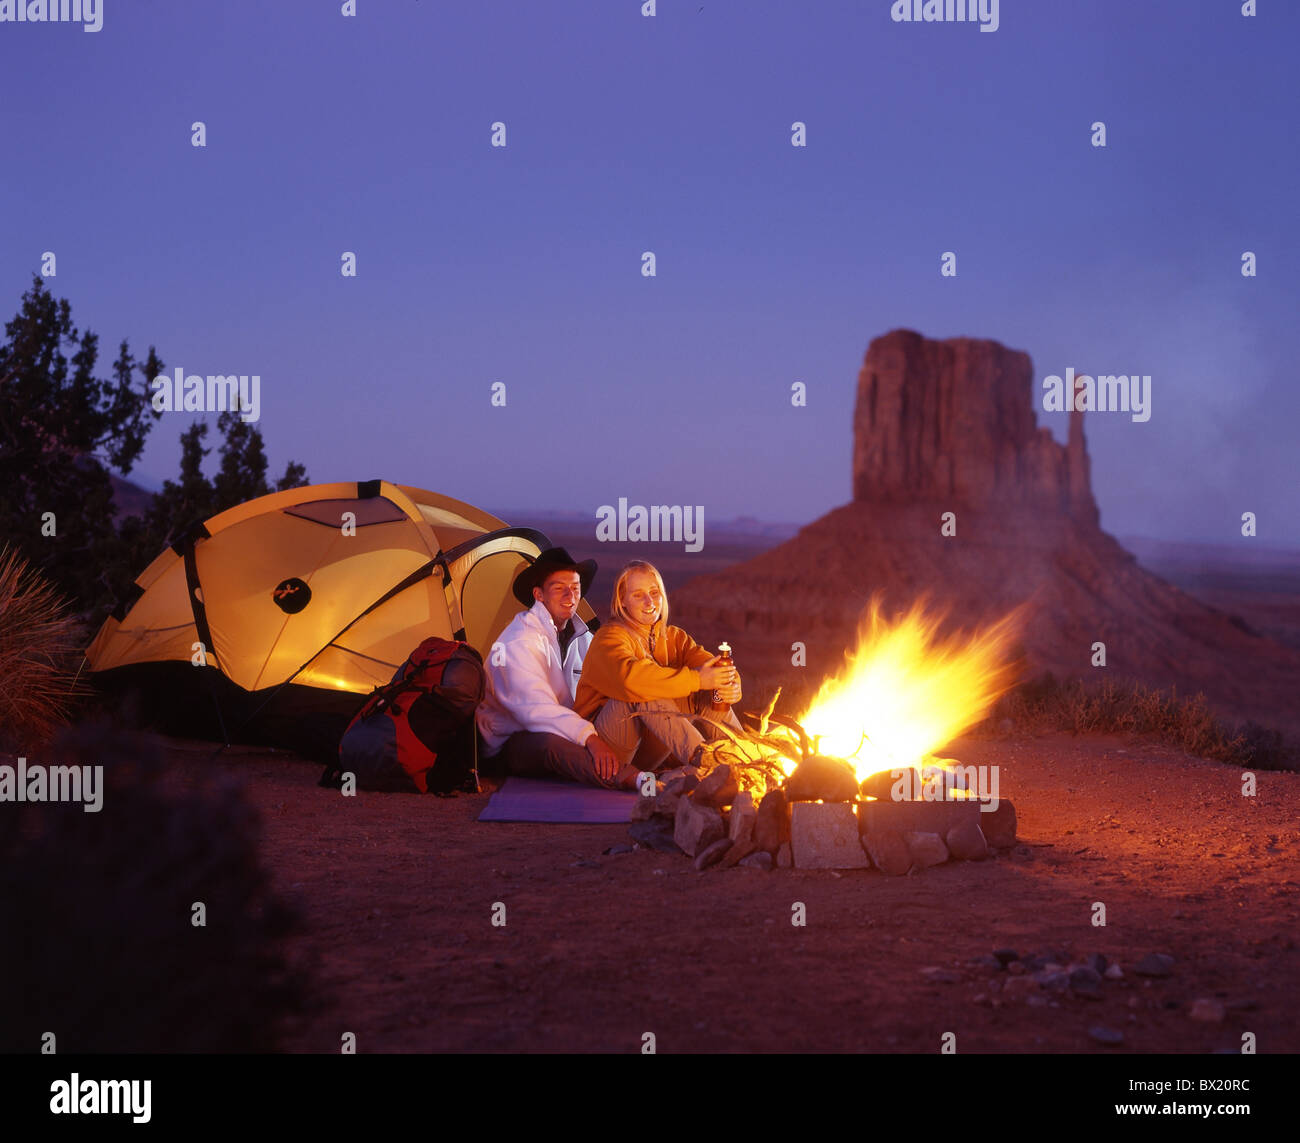 Camping Camp Tent Outside Couple Campfire Fire Fireplace Tent Stock